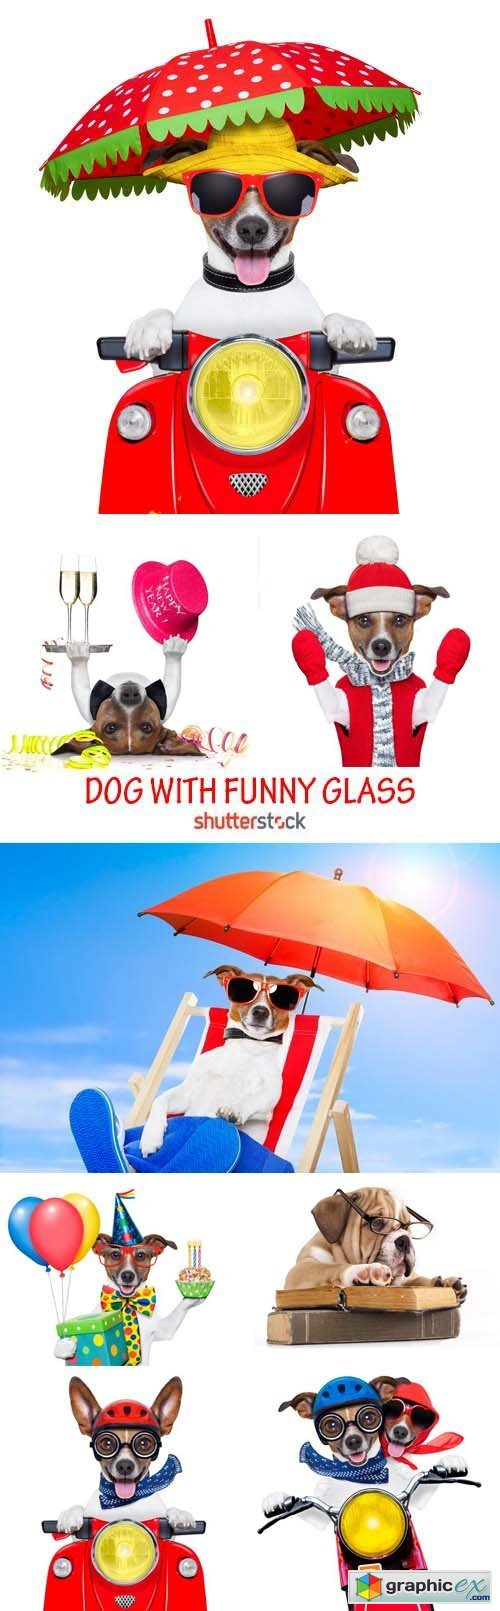 Amazing SS - Dog with funny glasses, 25xJPG